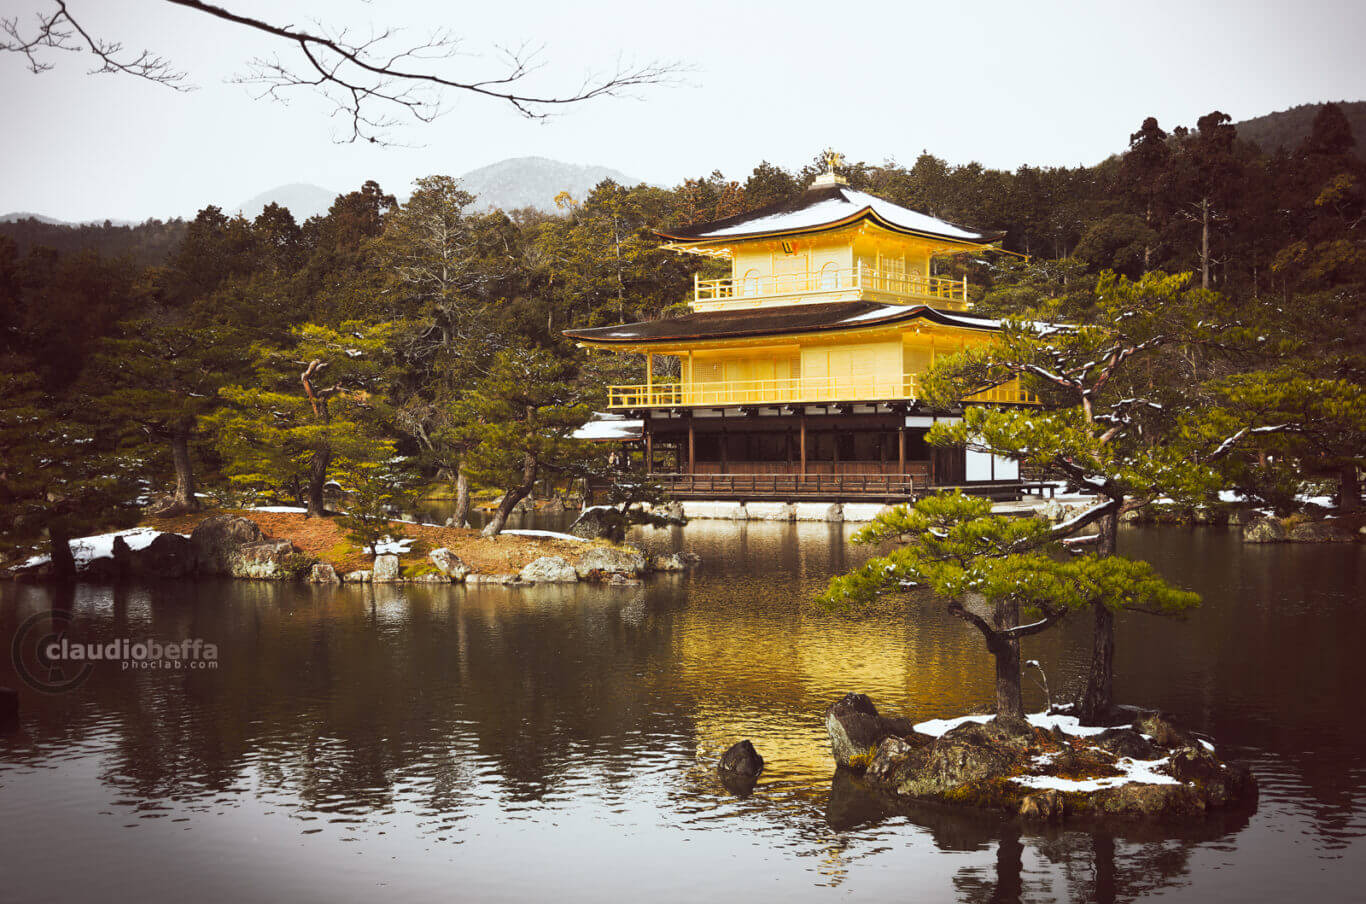 snow on the Kinkakuji, Kinkakuji, Gold, Pavilion, Snow, Winter, Kyoto, Japan, Pond, Water, Trees, Reflections, Travel